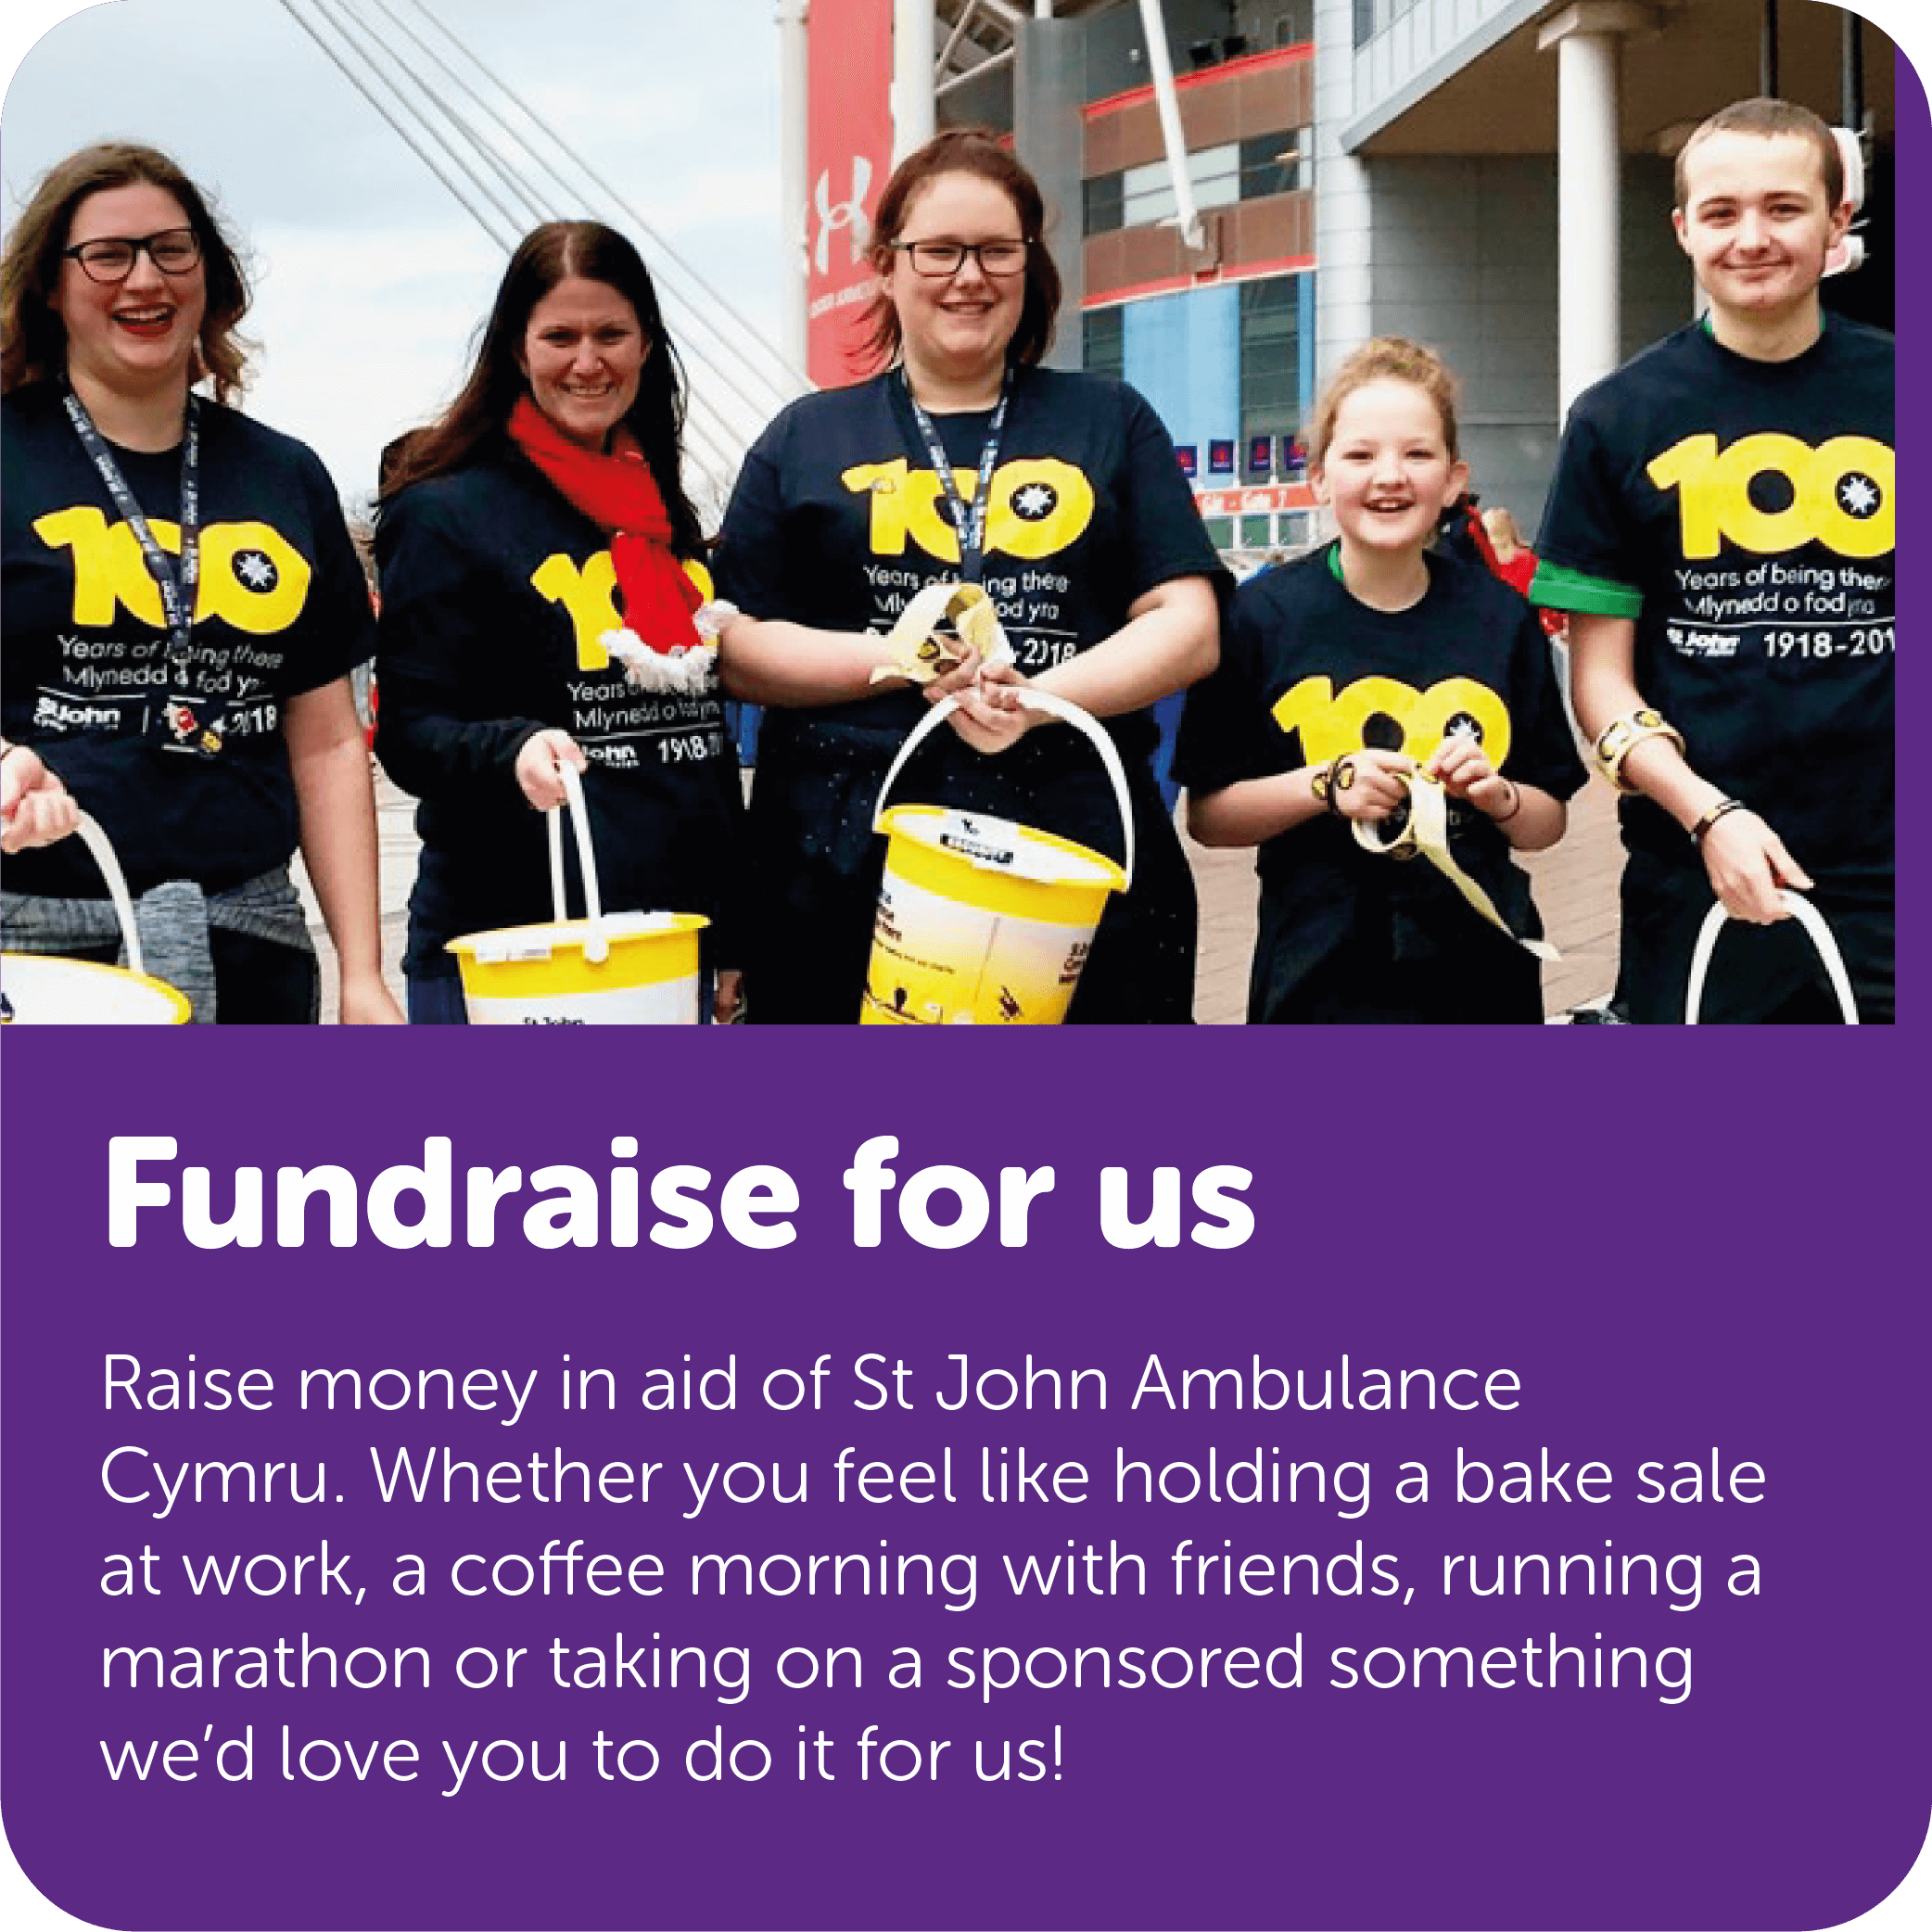 Raise money in aid of St John Ambulance Cymru. Whether you feel like holding a bake sale at work, a coffee morning with friends, running a marathon or taking on a sponsored something we'd love you to do it for us!